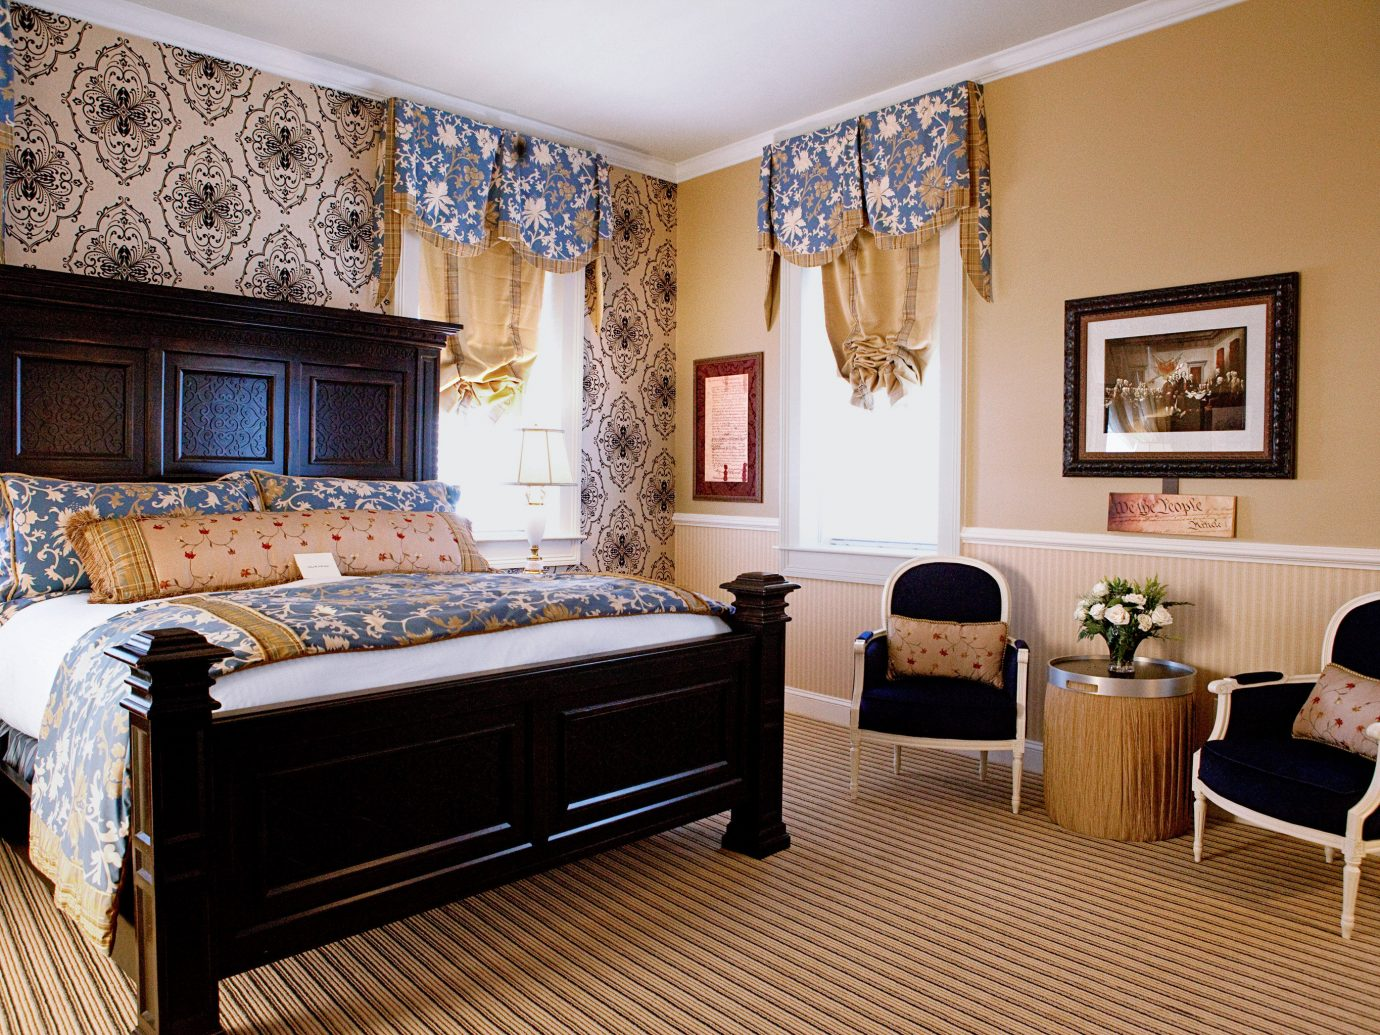 Bedroom at The Vendue in Charlotte.